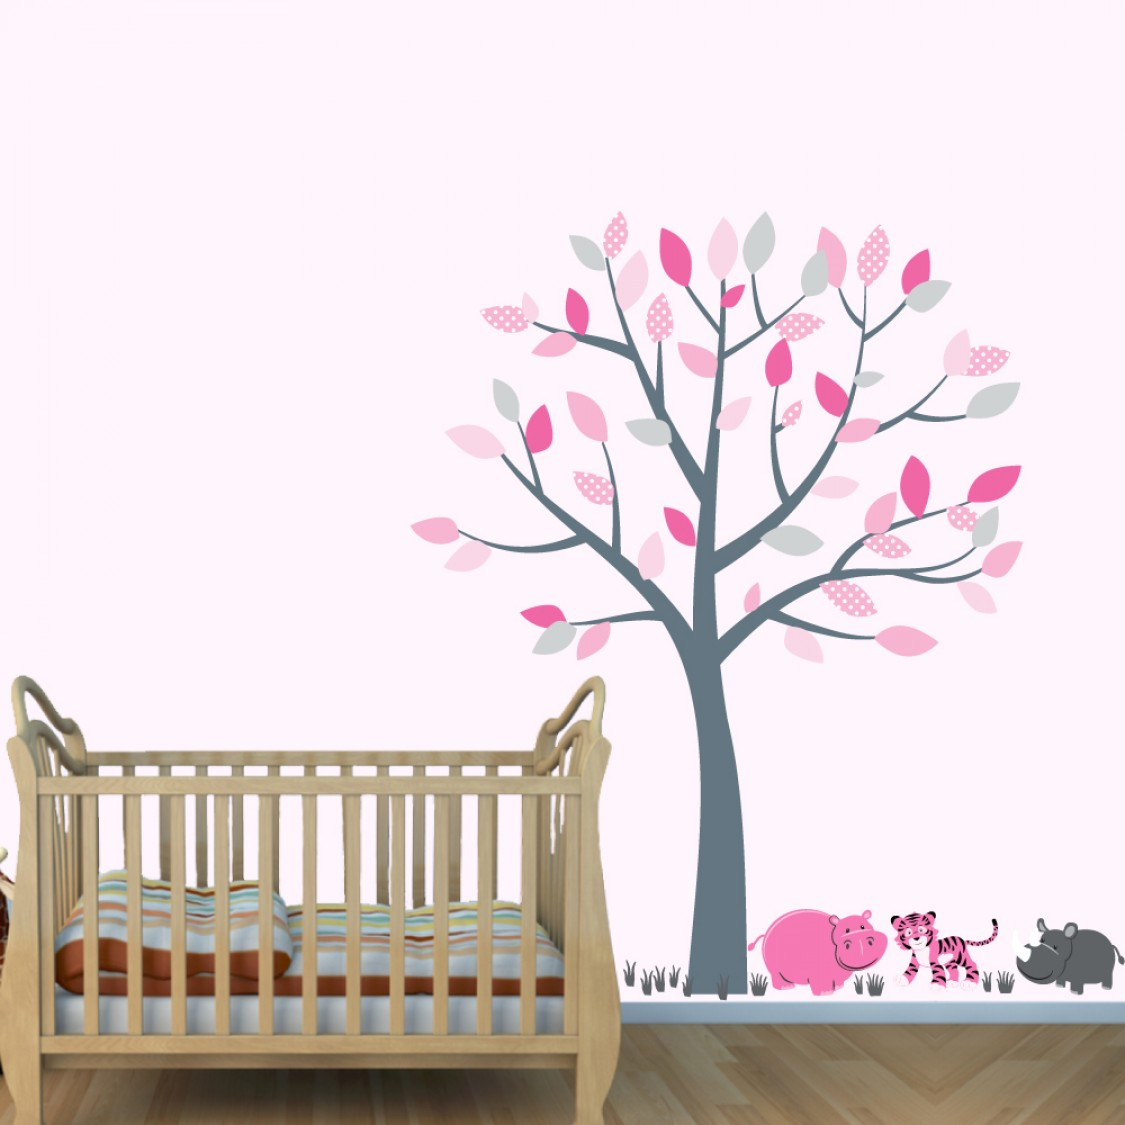 Pink and Gray Jungle Decals With Tiger Wall Decor For Boys Bedrooms